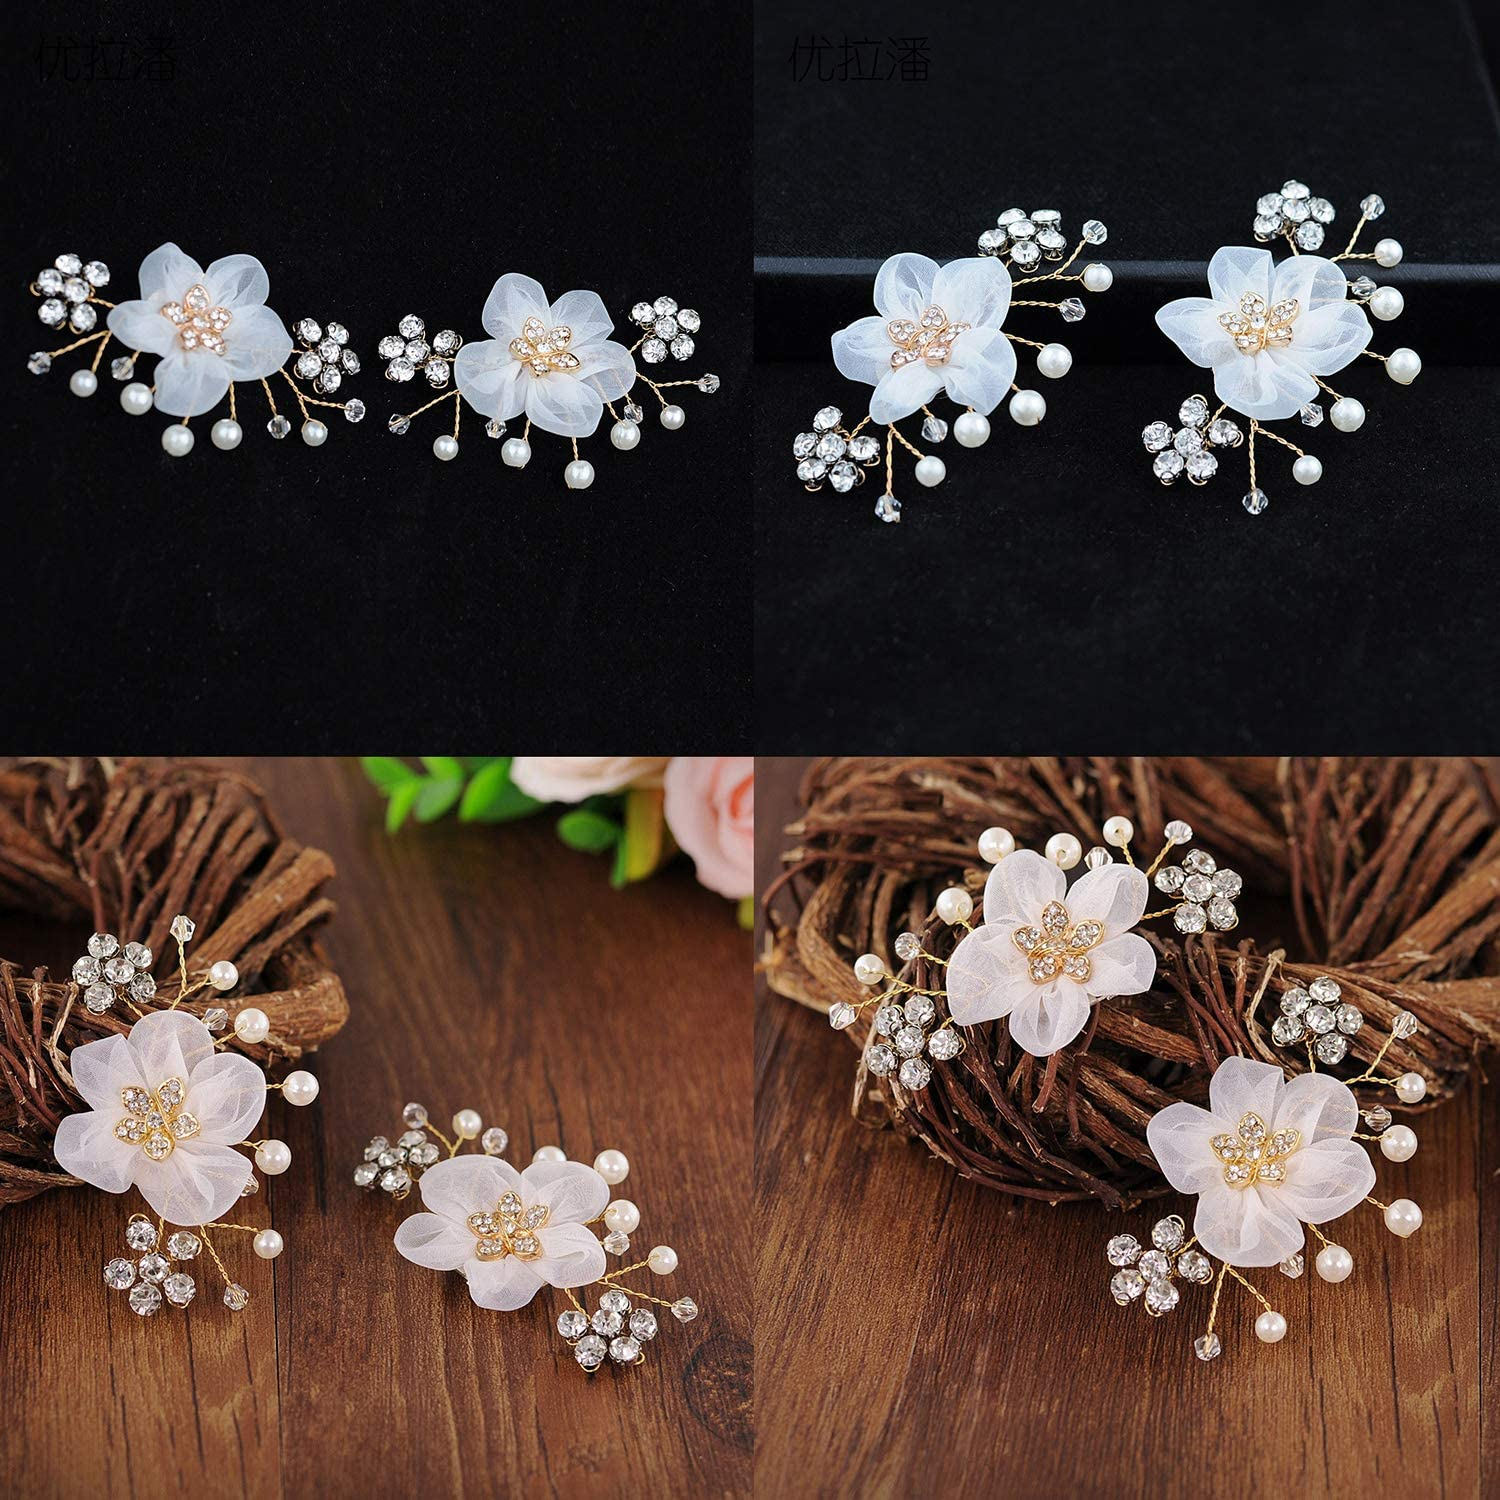 Florashop Womens 2PC Wedding Party Shoes Clips Rhinestone Pearl Crystal Flower Decorative Jewelry Clips Removable Shoe Decorations